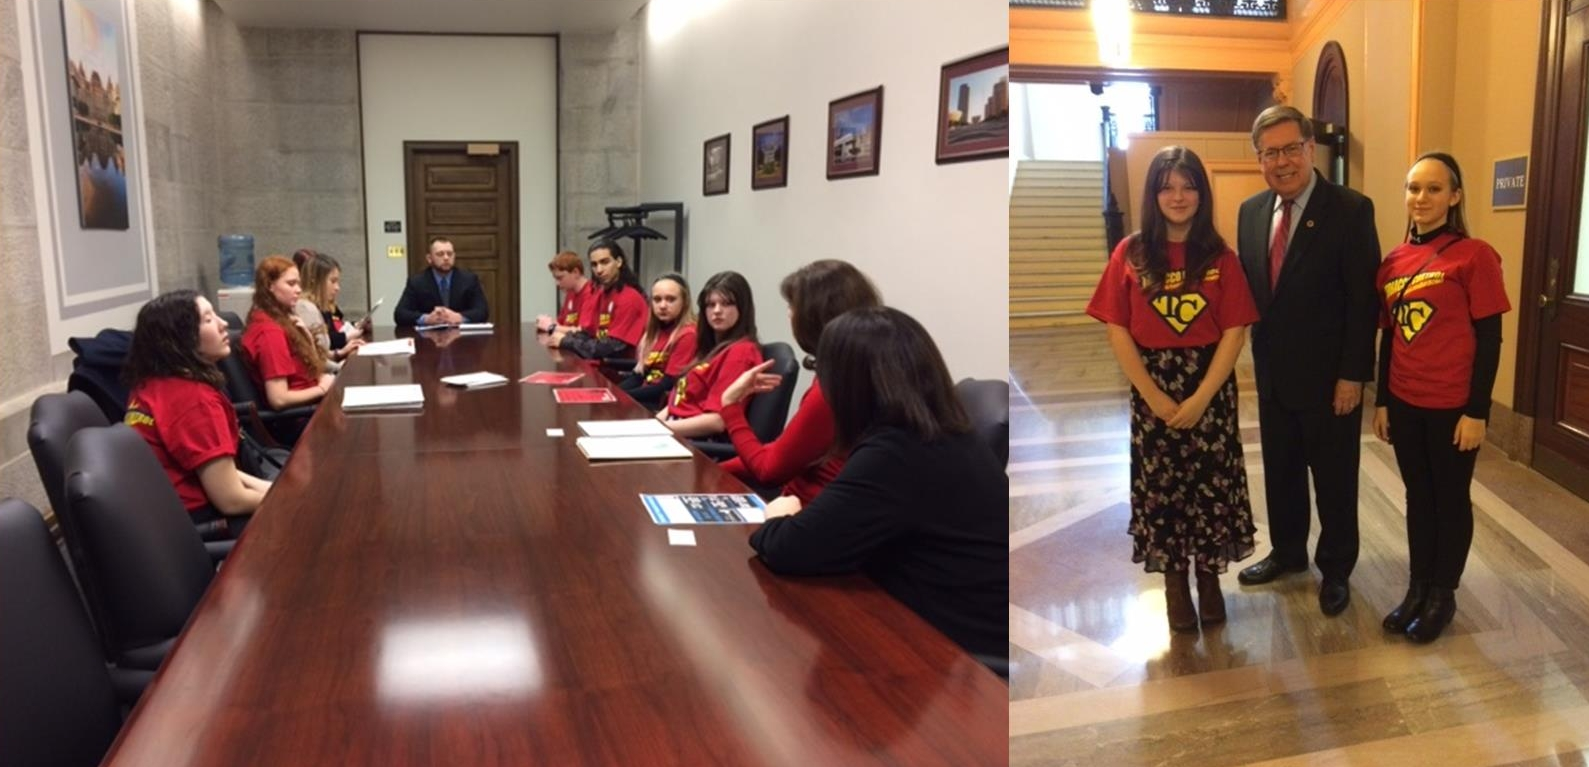 Cherry Valley-Springfield RC - On the left, youth have an opportunity to discuss what RC means to them with Joshua Bailey who is the Legislative Assistant for Senator James Seward.On the Right, Senator Seward meets with RC youth Jasmine Neil and Jillian Johnson.